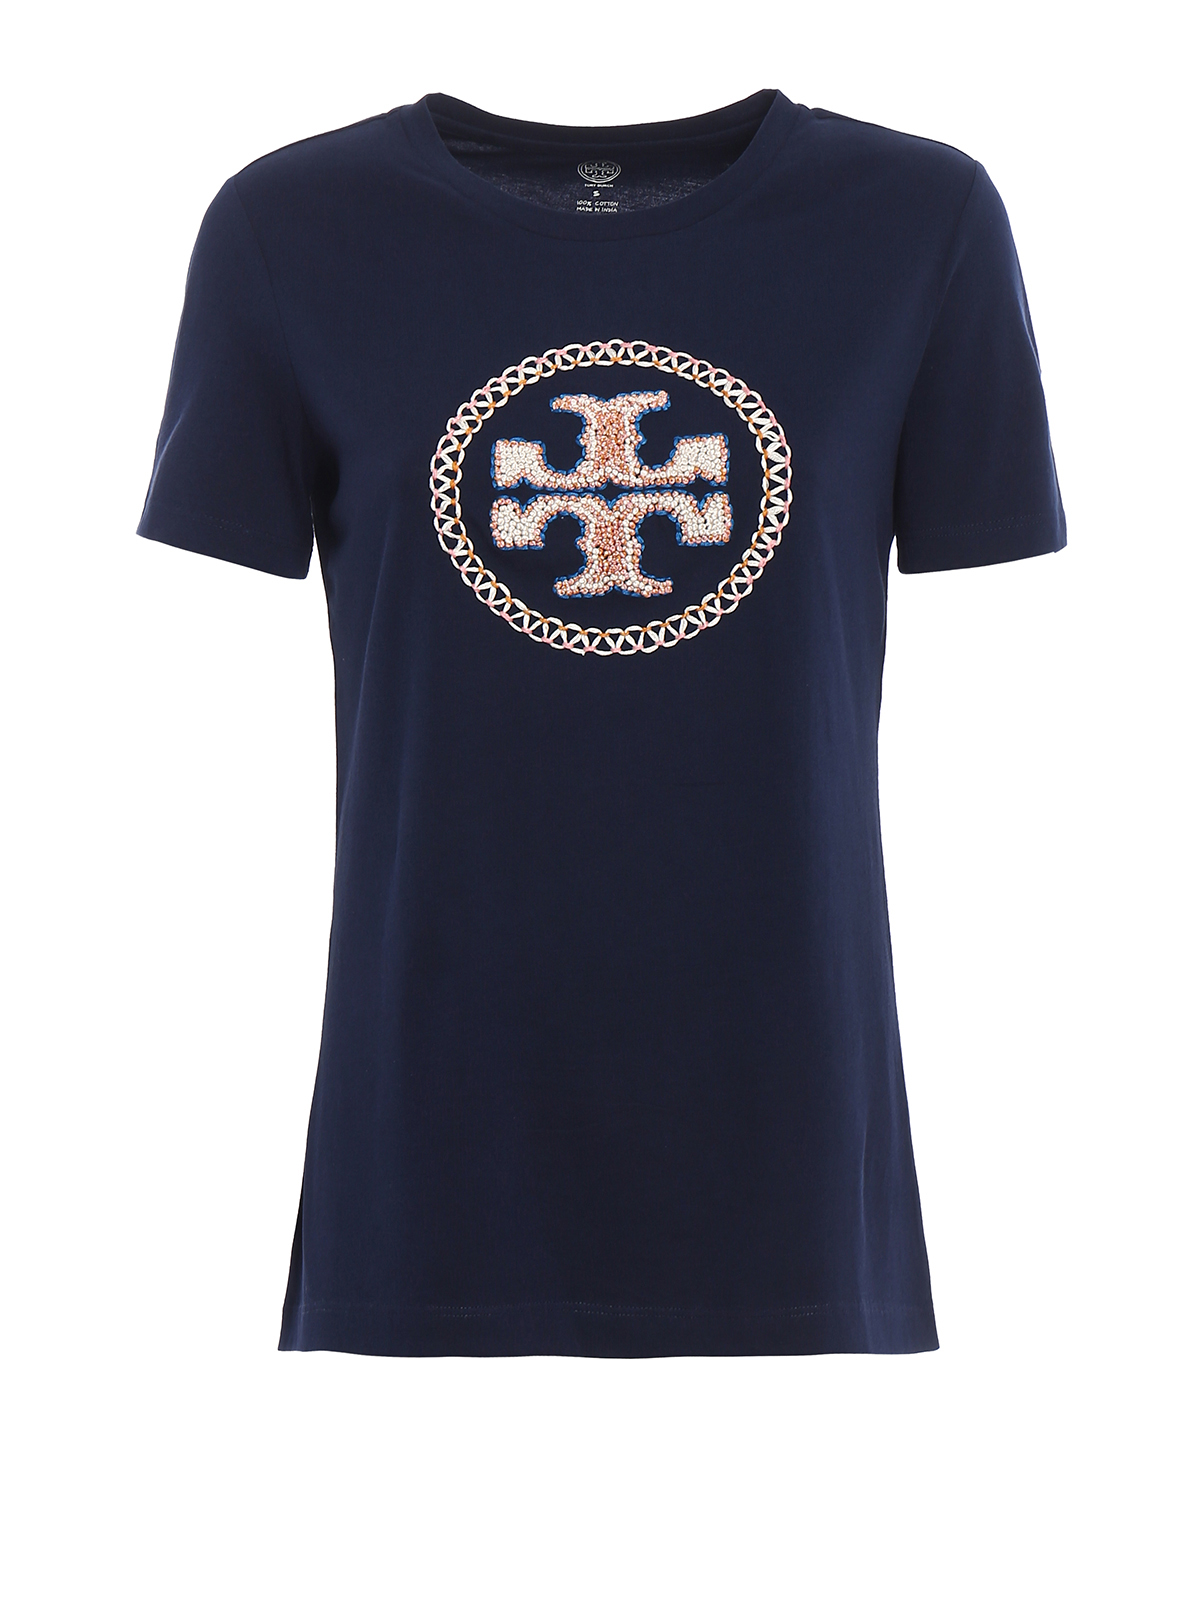 Maya embroidered logo t shirt by tory burch t shirts ikrix for T shirt with embroidered logo